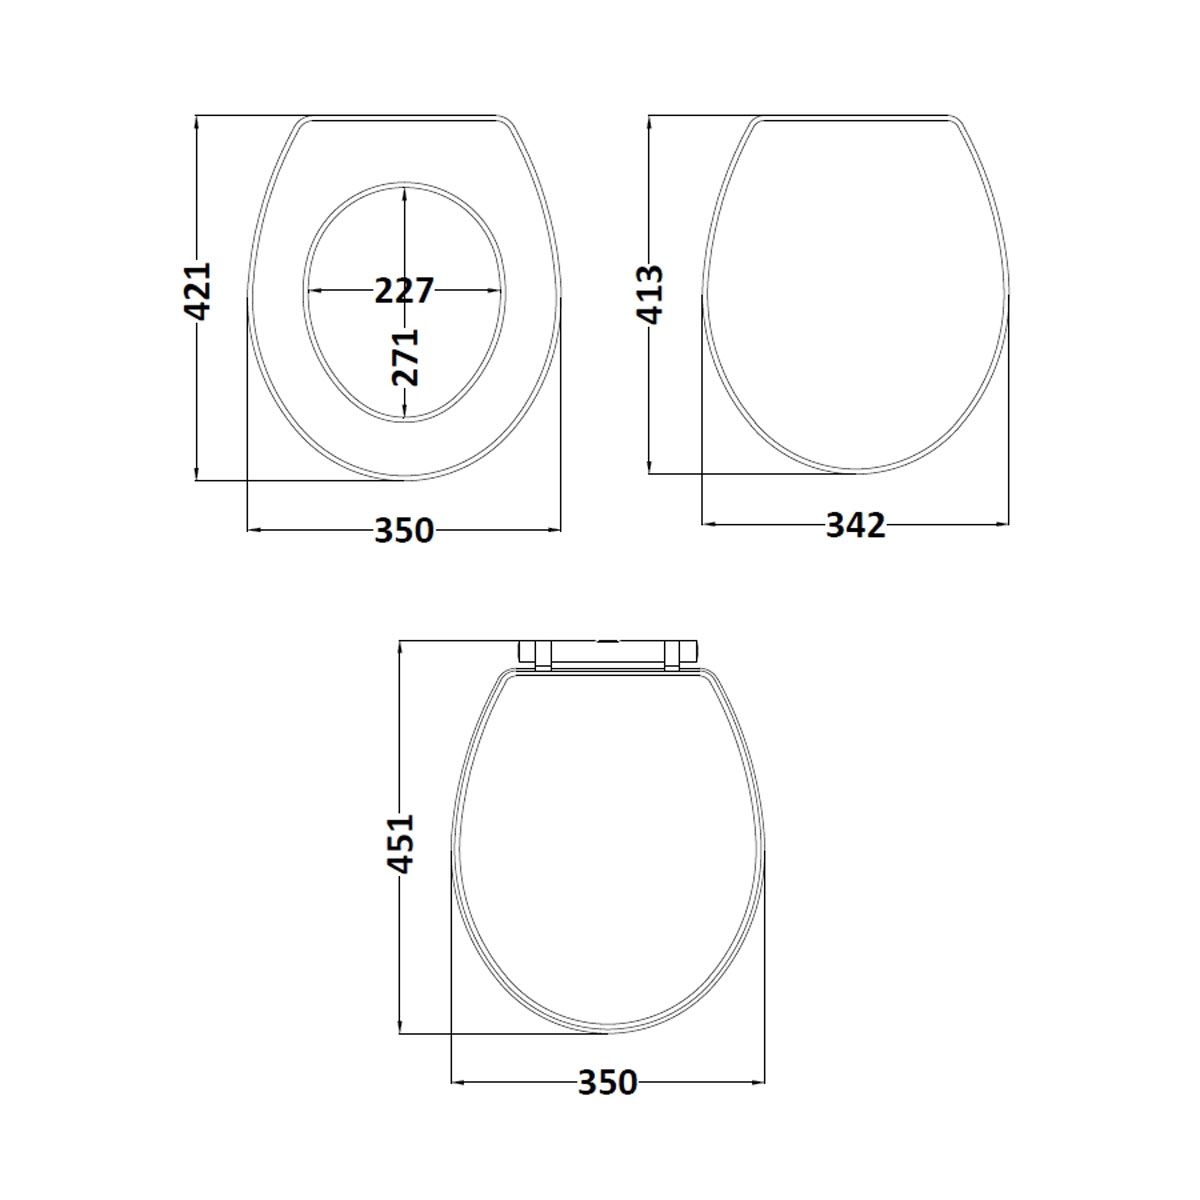 Richmond & Carlton Timeless Sand Soft Close Toilet Seat Dimensions